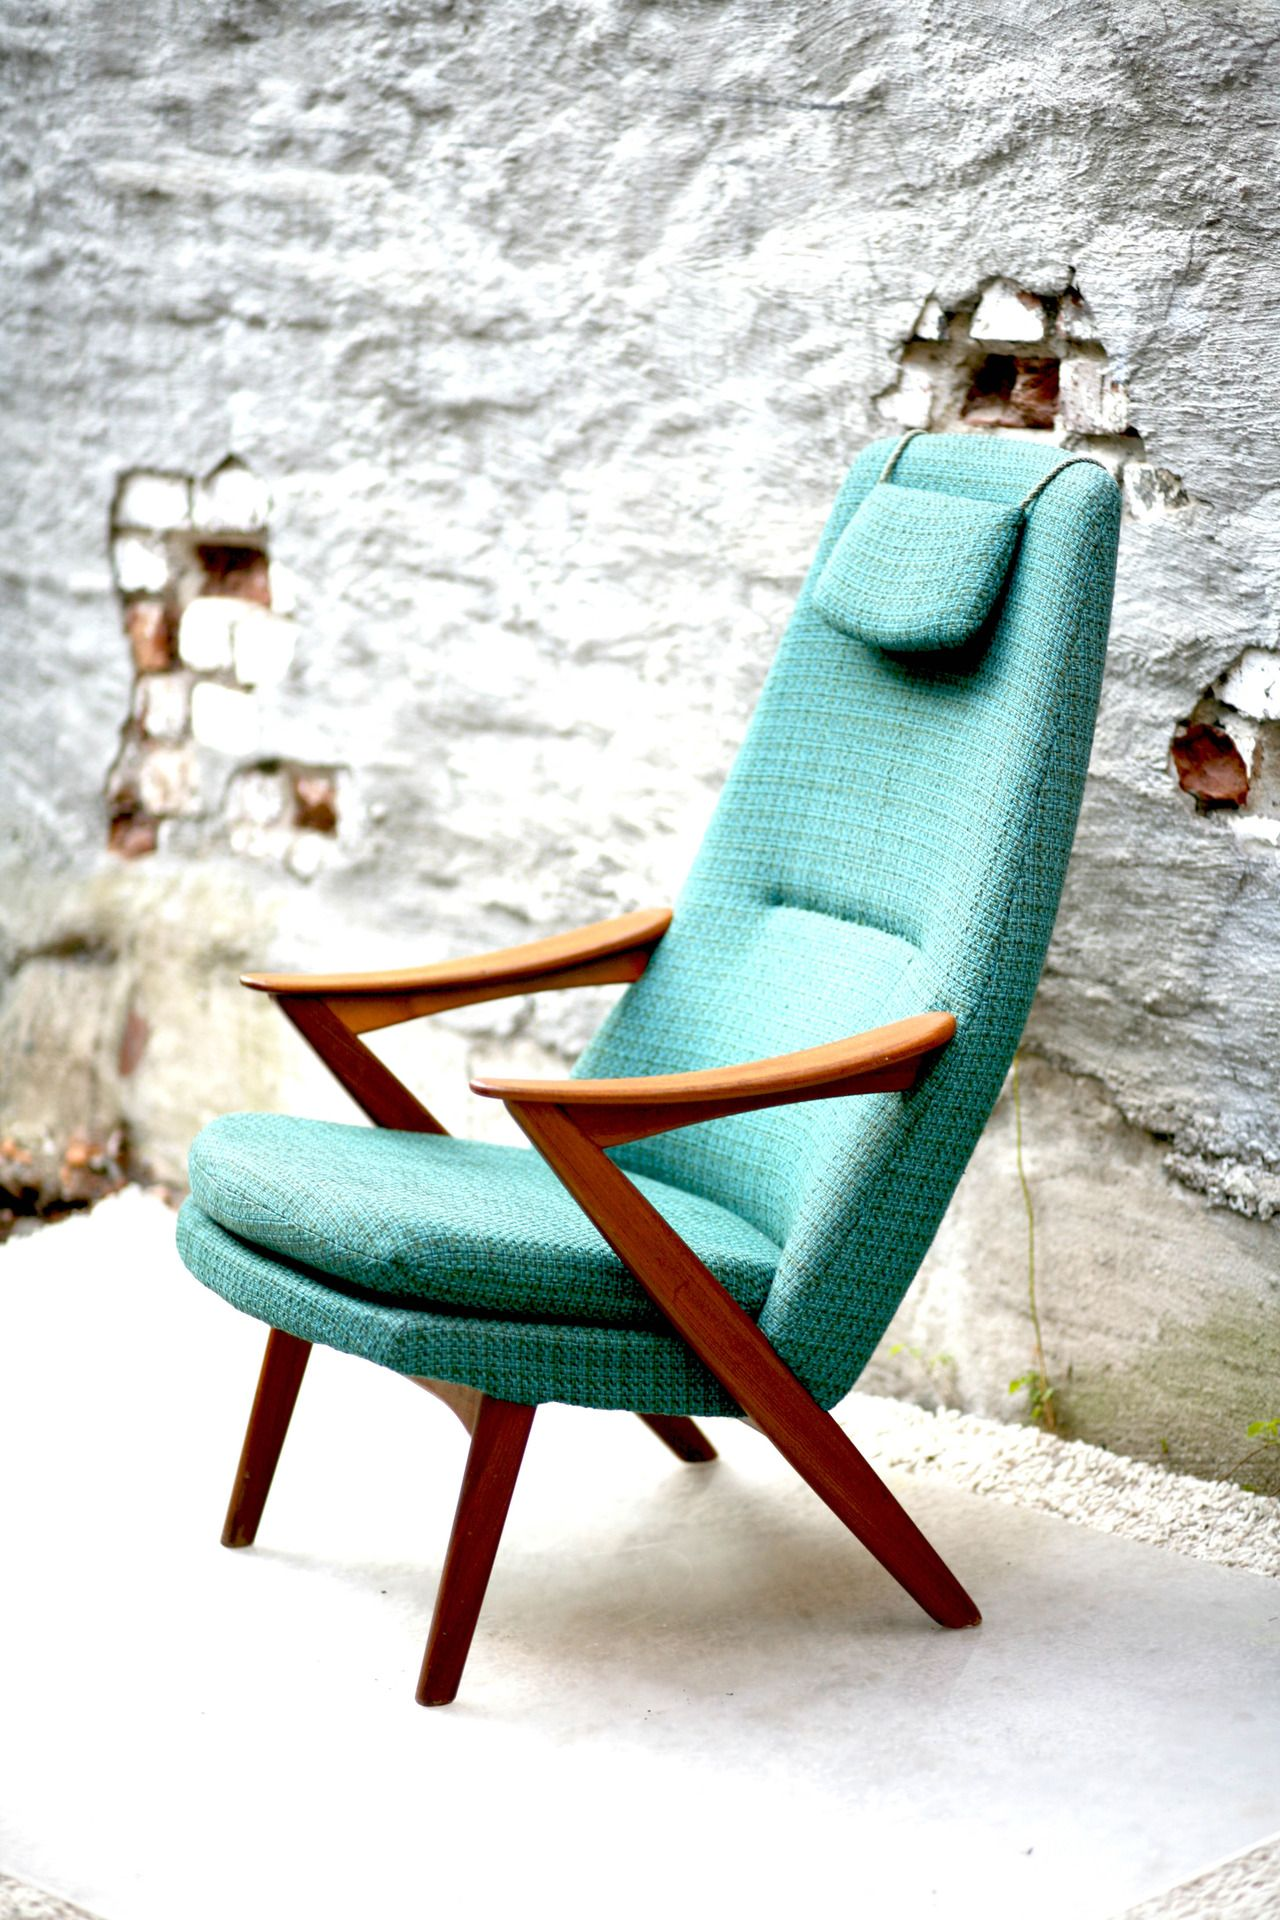 Midcentury modern (can't find more info on the designer of this chair. Estimated date 50's-60's)